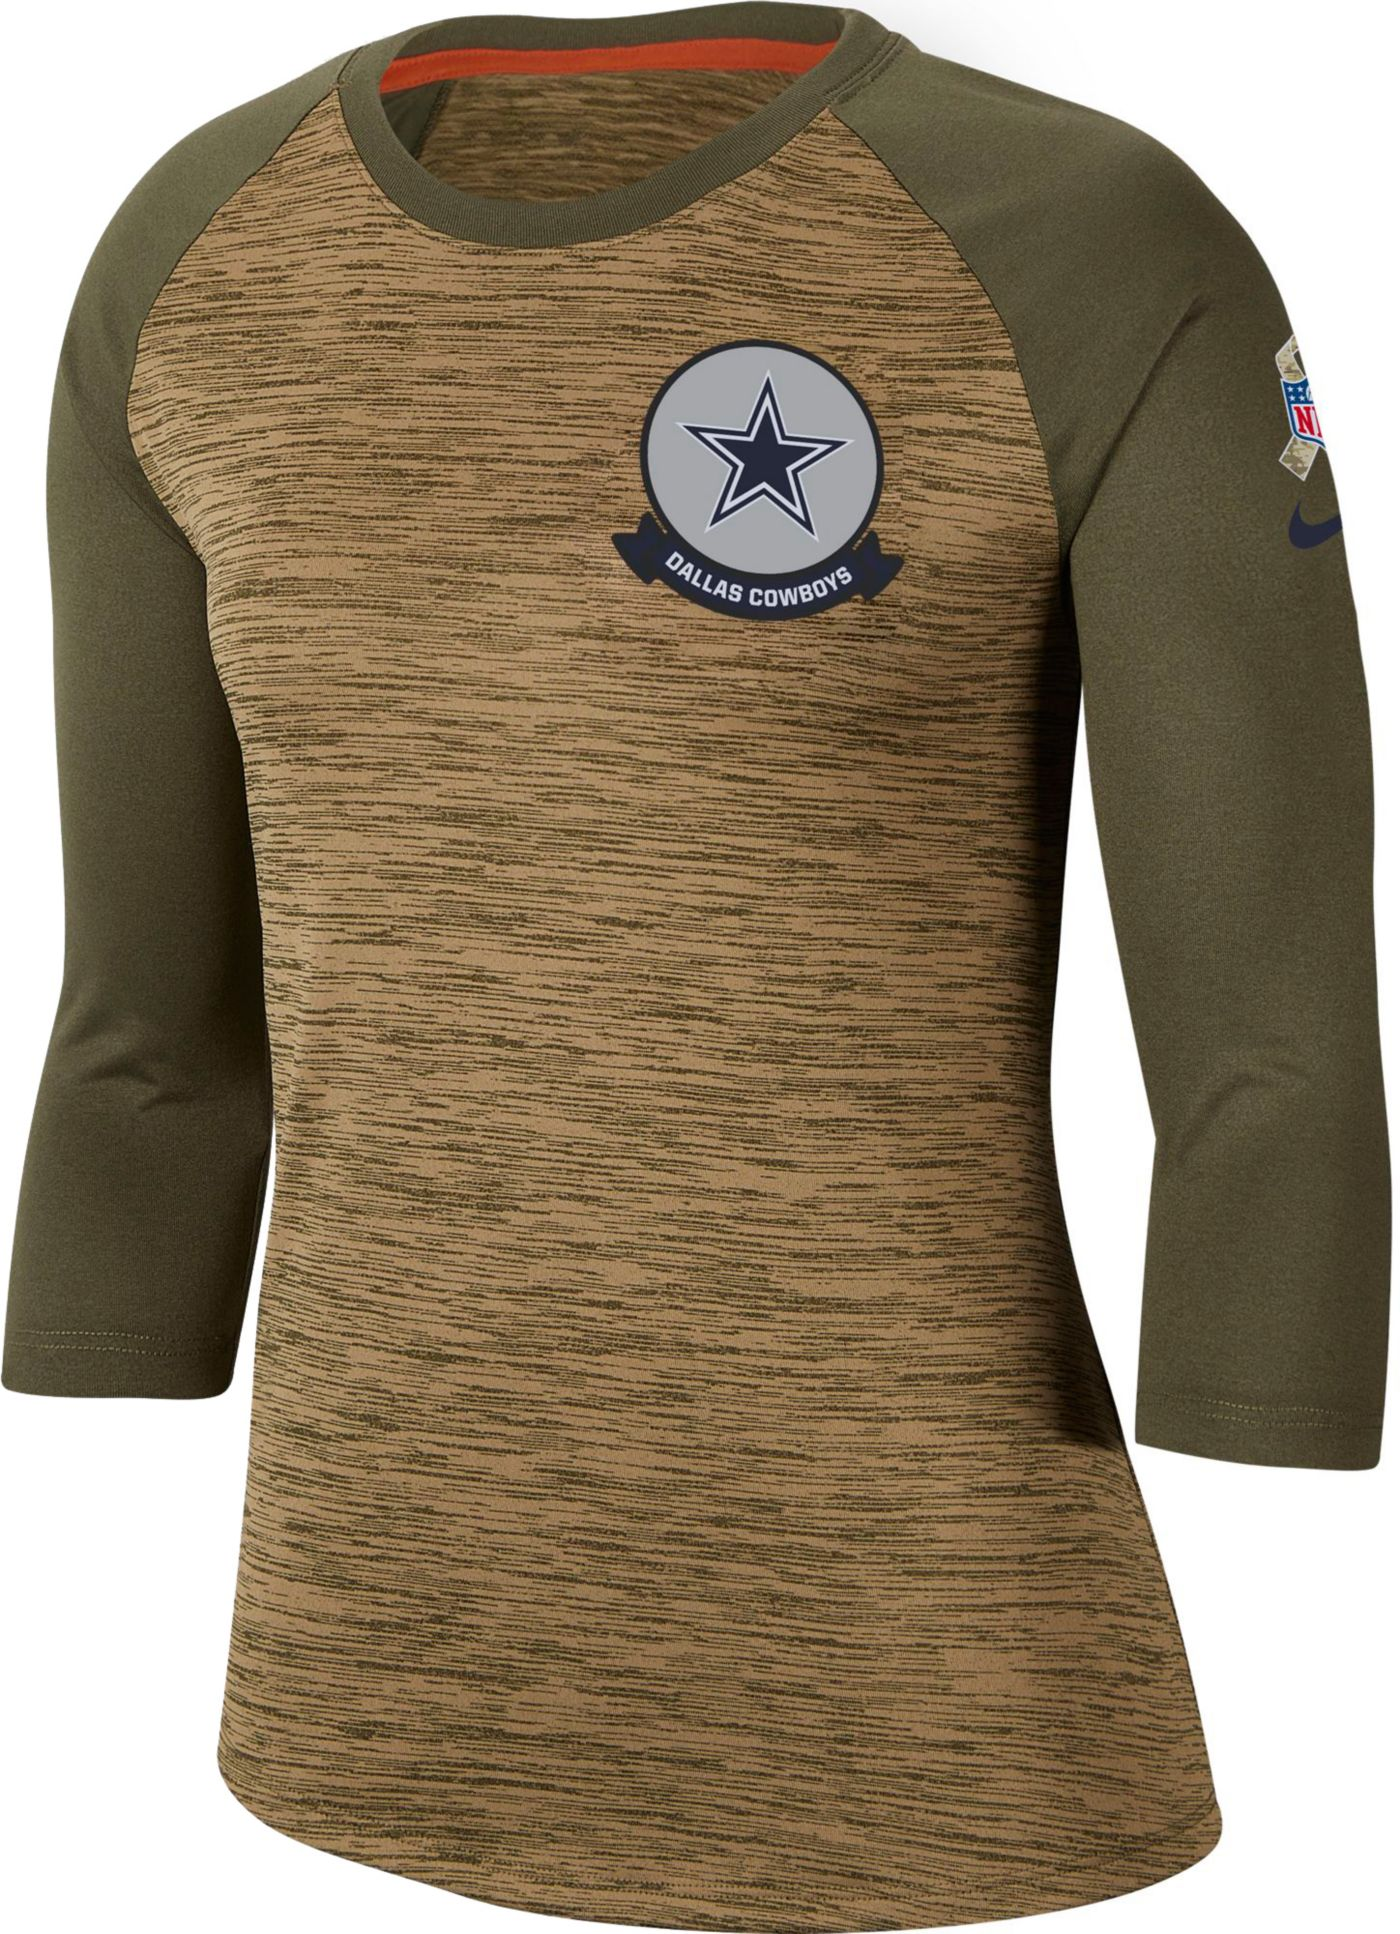 Nike Women's Salute to Service Dallas Cowboys Dri-FIT Beige Raglan Shirt